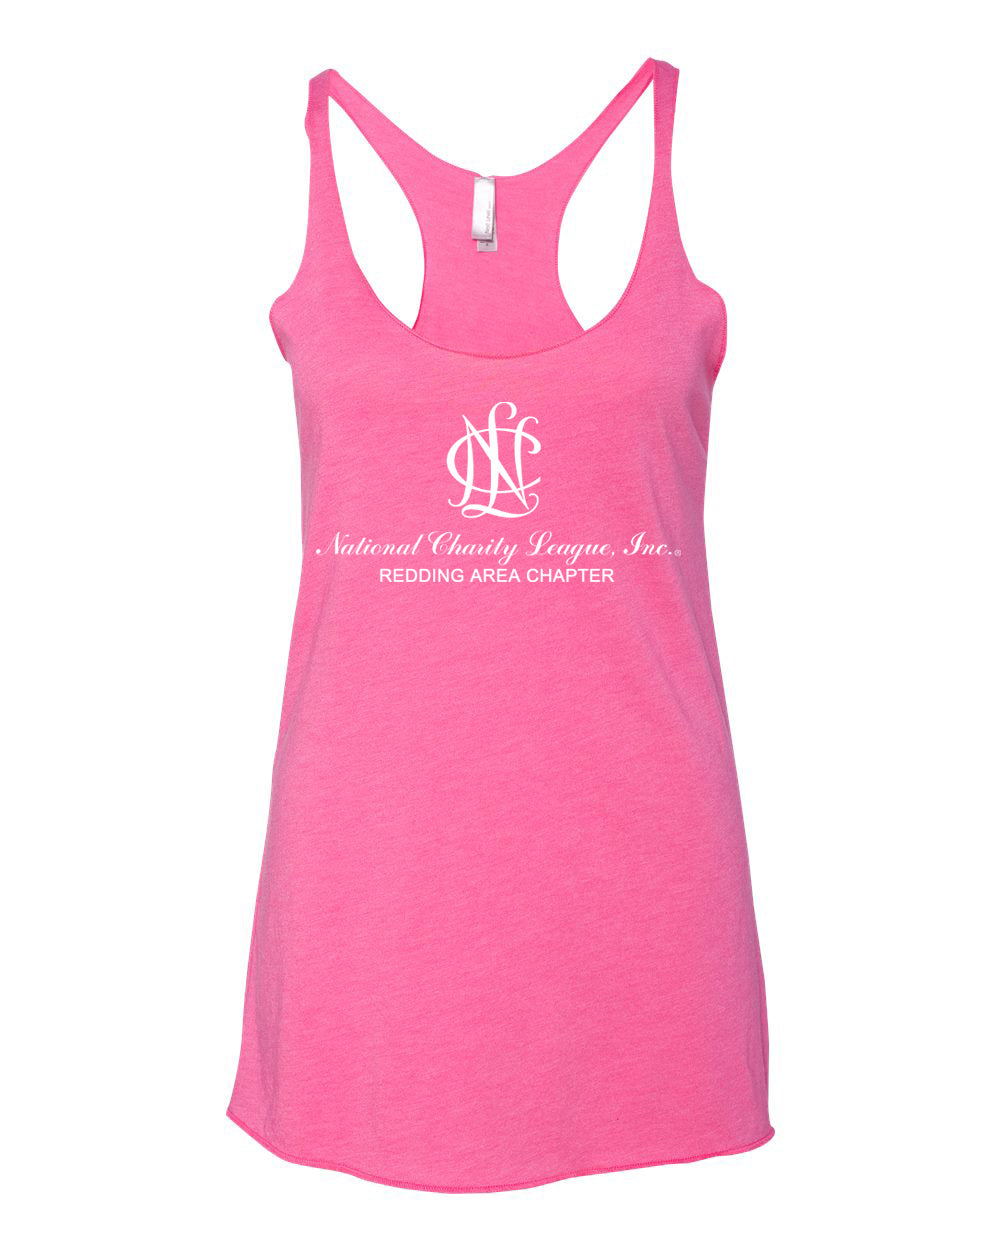 Redding Area Chapter NCL Chapter Triblend Racerback Tank Top